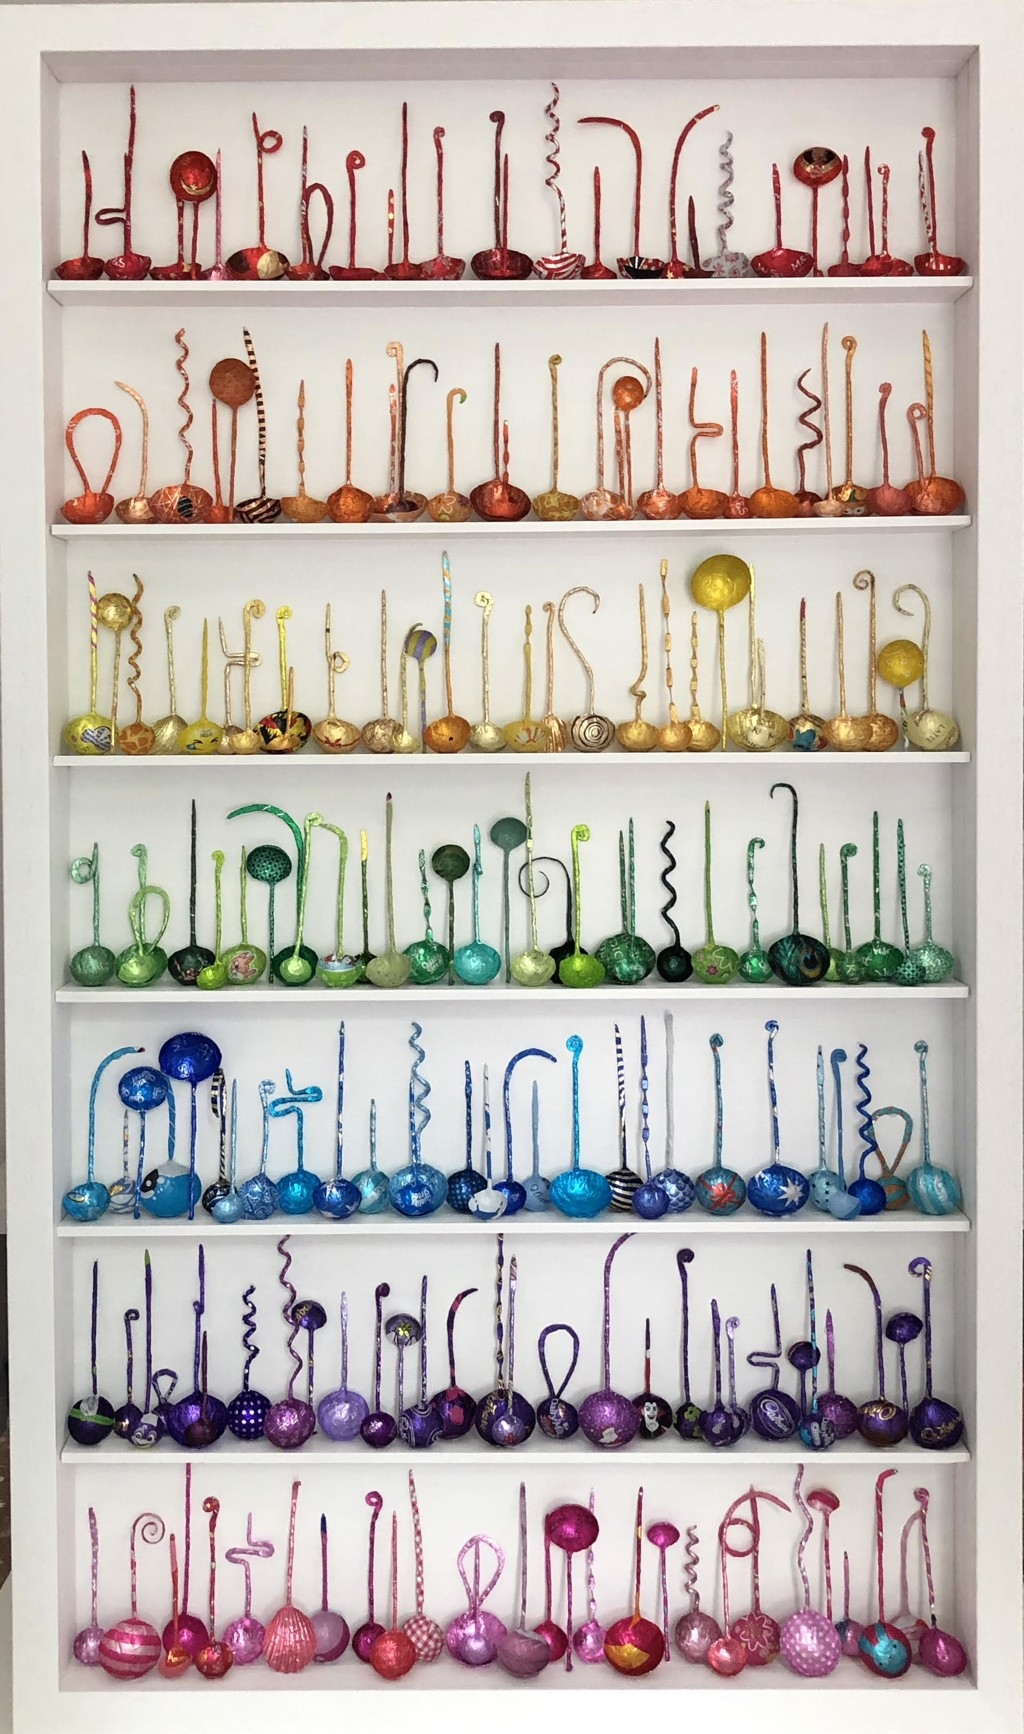 Resting Spoons by Joanne Tinker